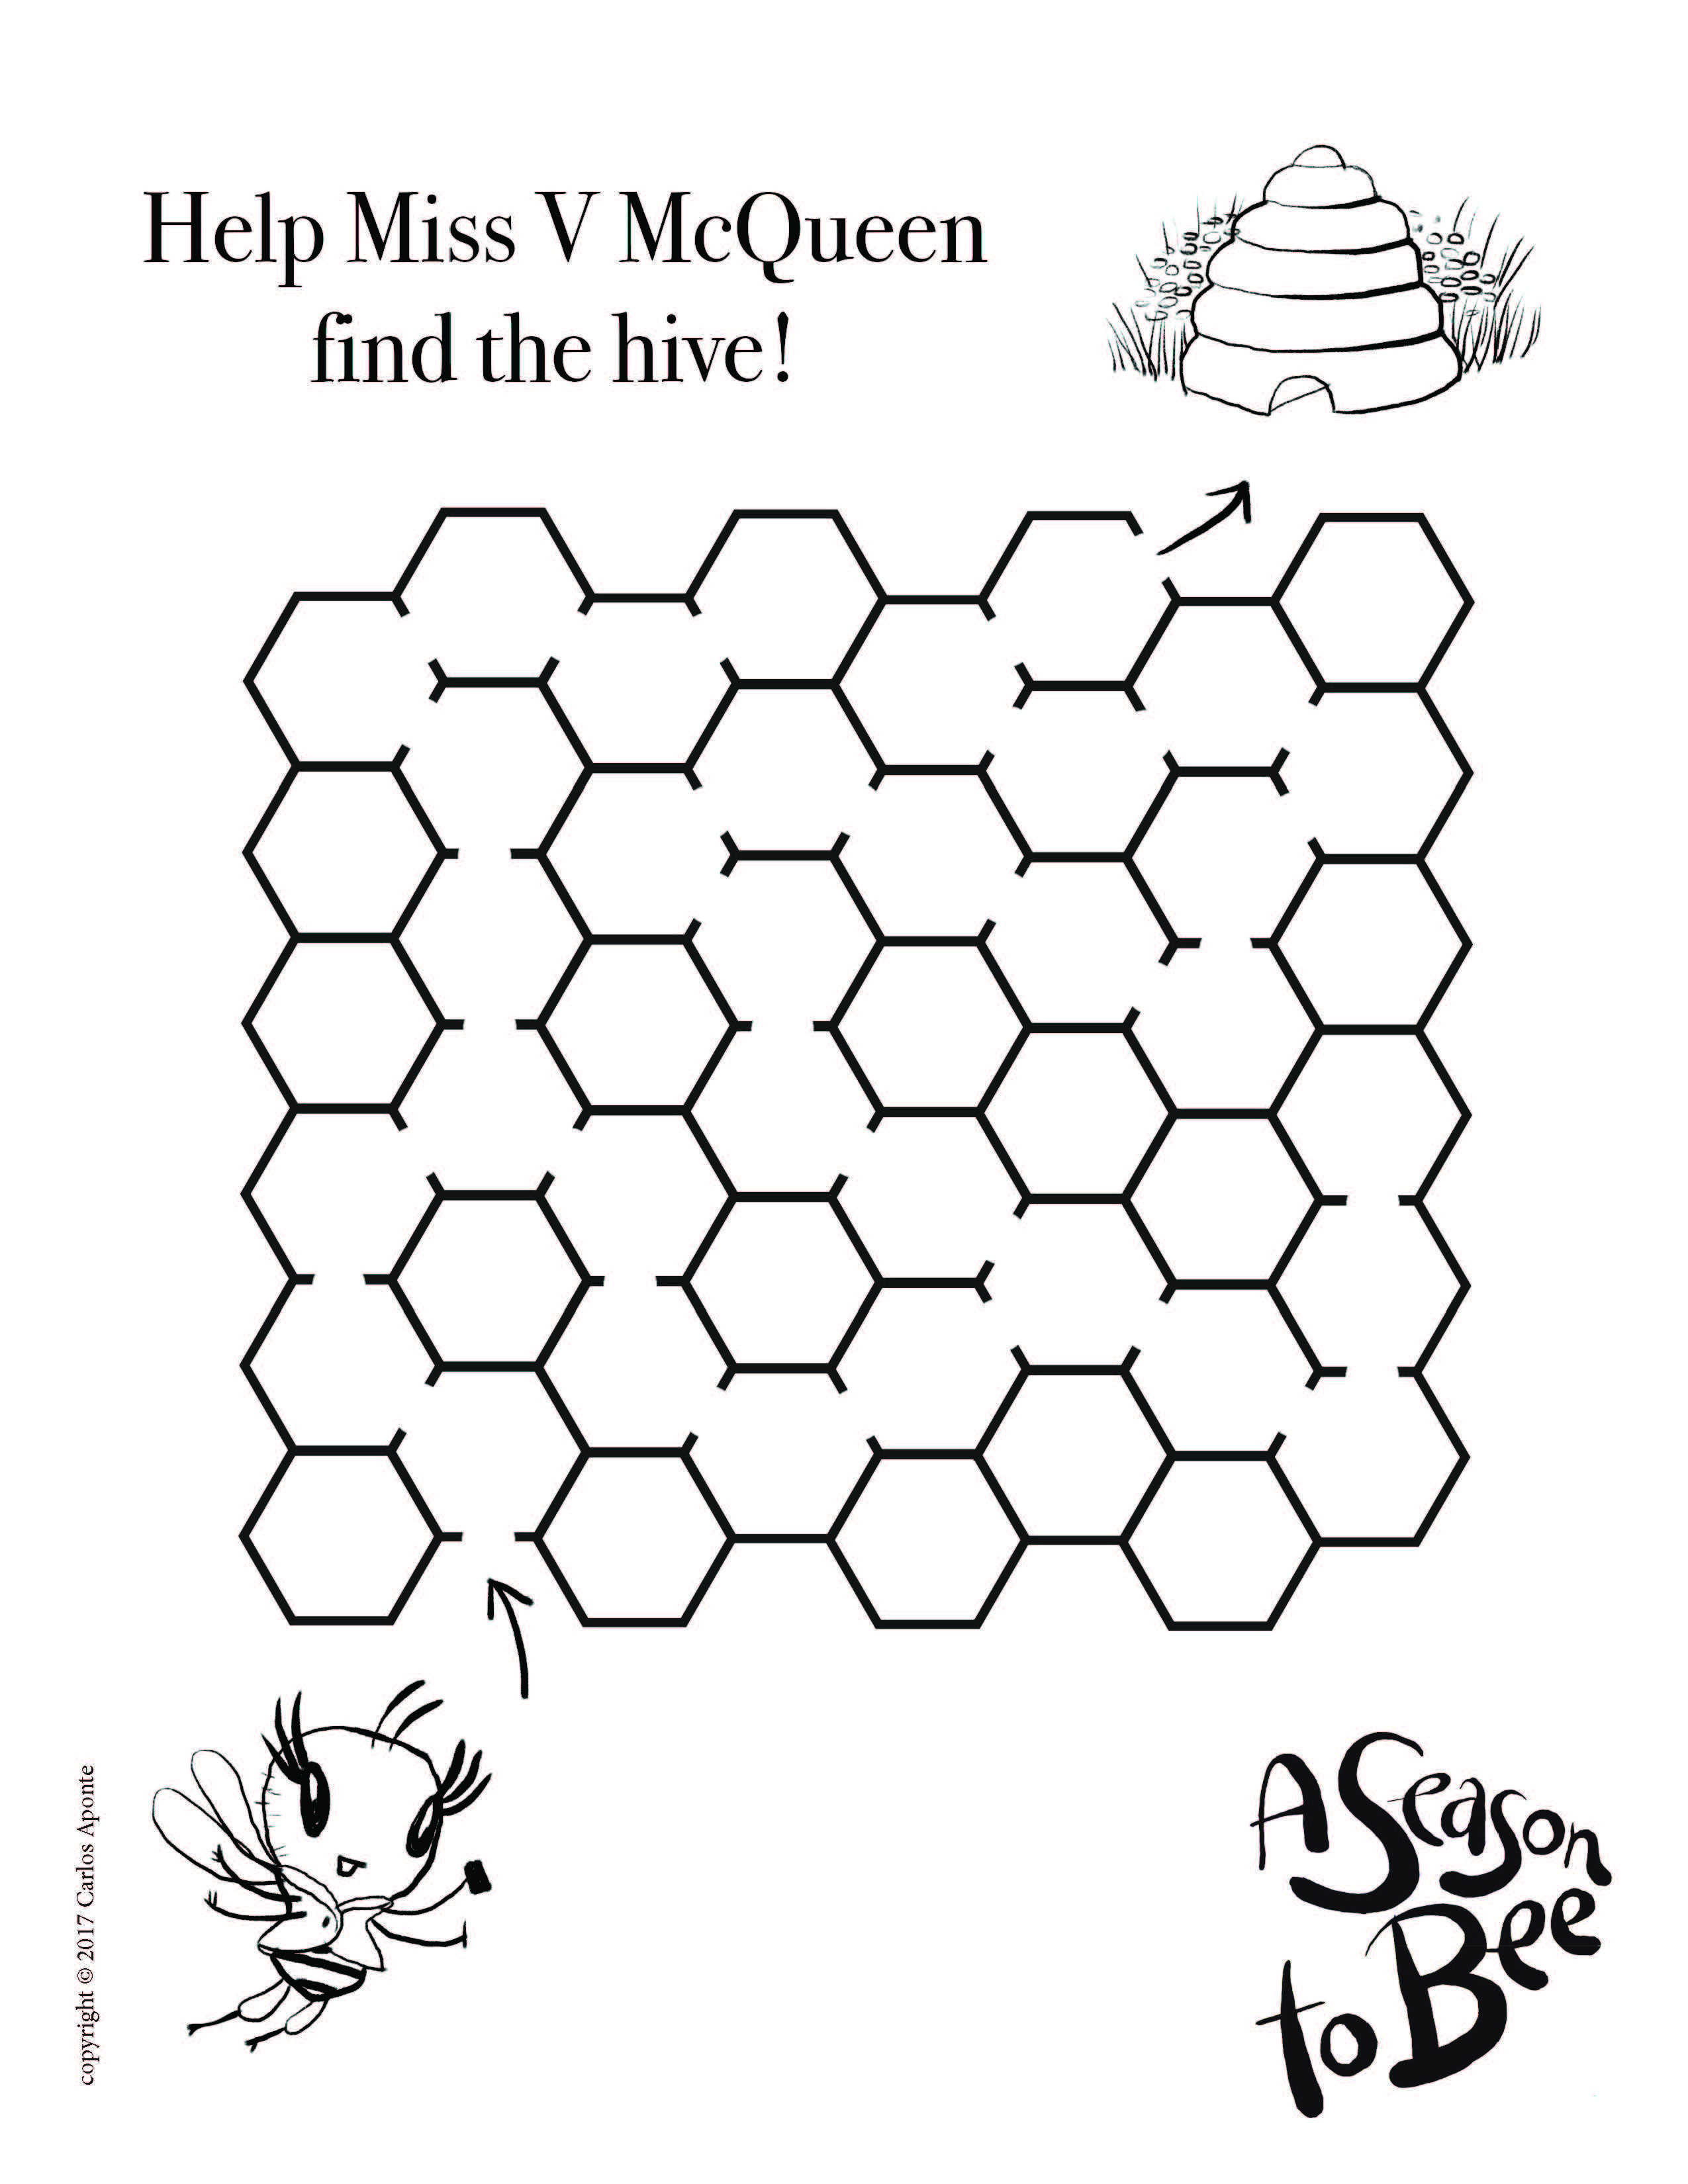 Help Miss V Mcqueen Find The Hive Learn How To Draw A Fashionable Bug Kindergarten Worksheets Kindergarten Math Worksheets Kindergarten Addition Worksheets [ 3300 x 2550 Pixel ]